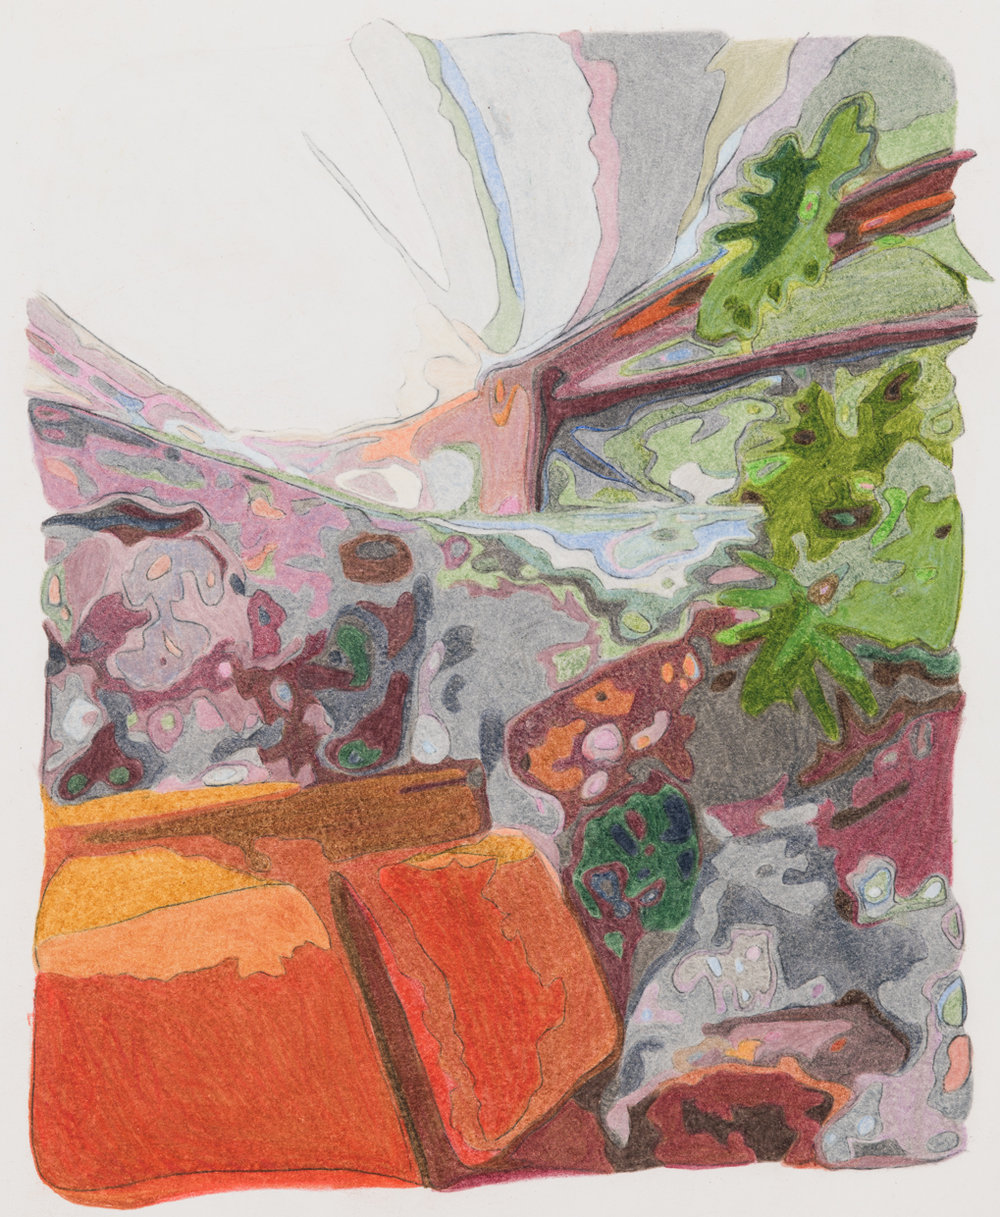 Sitting Nook, Taliesin West , colored pencil on paper, 10 x 8 inches, 2018.  Photography by    Paul Takeuchi